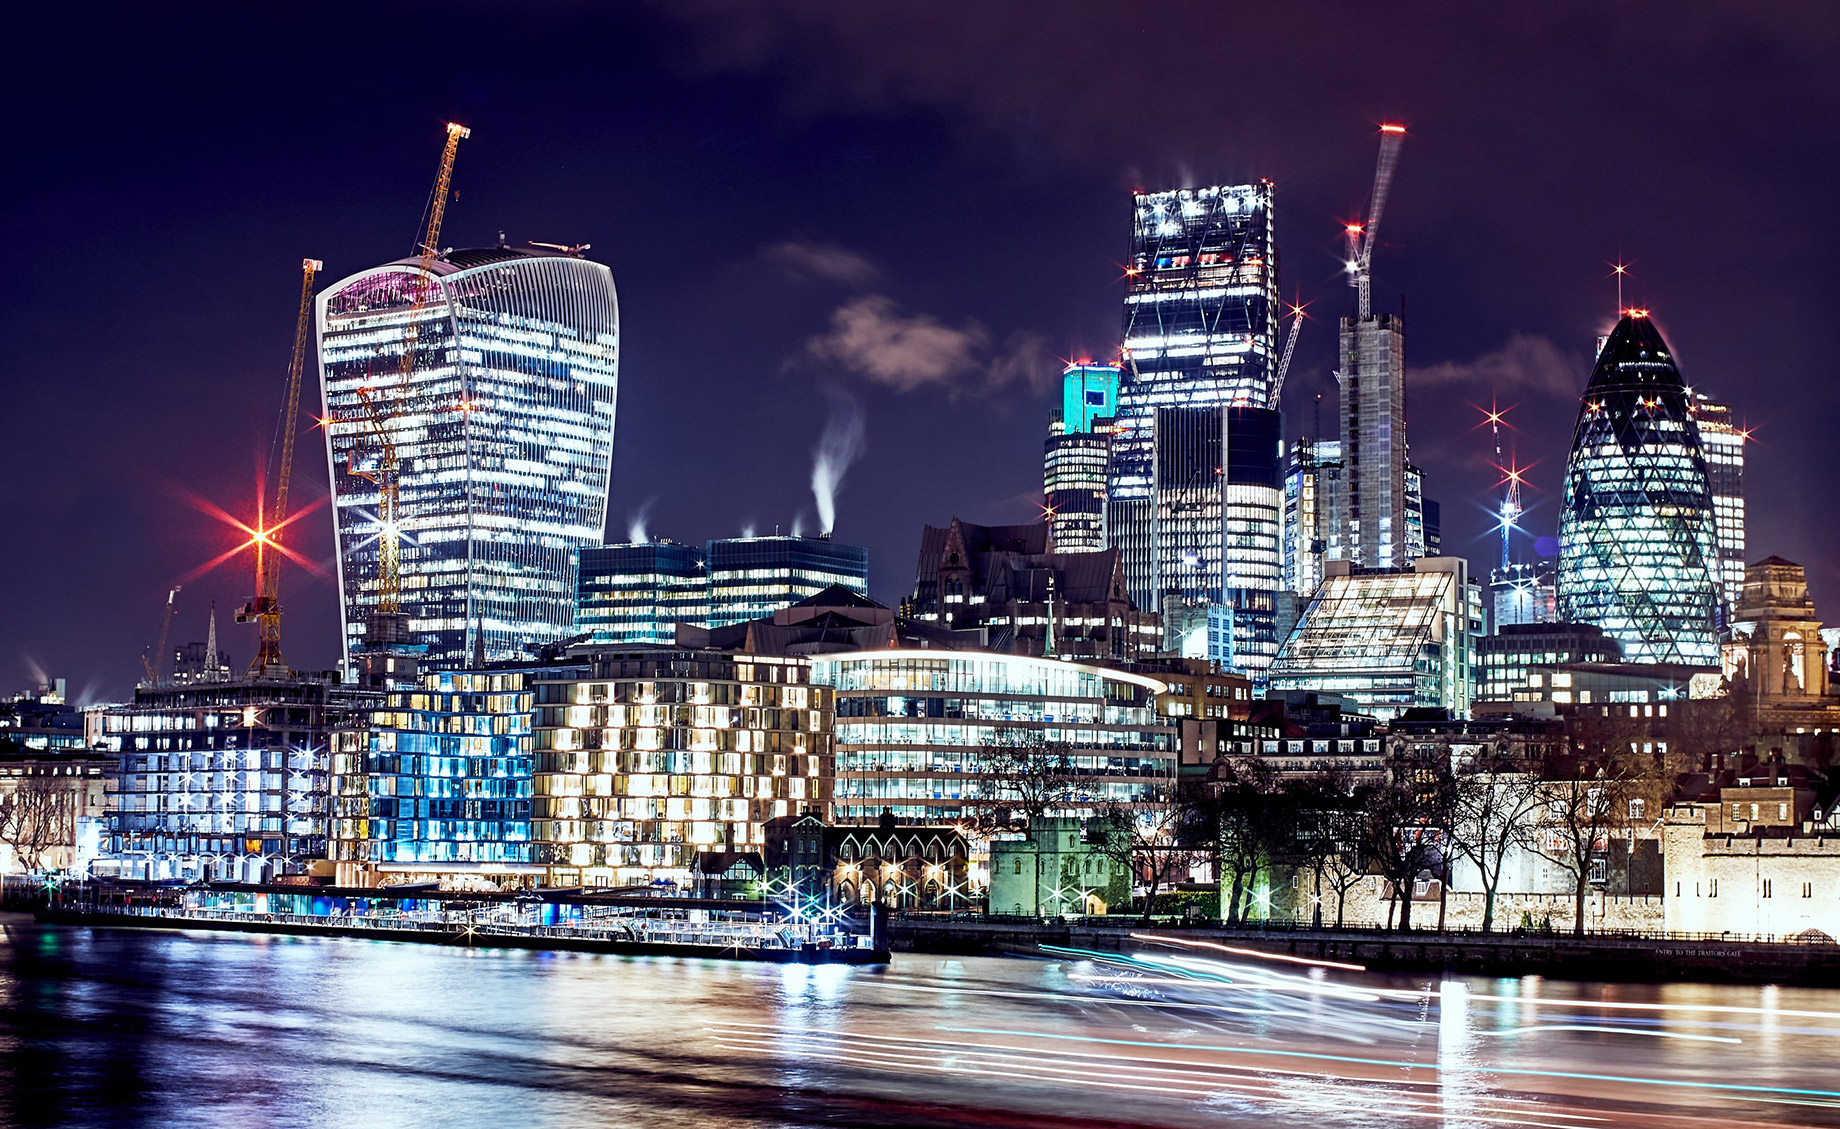 London, England, UK - The Most Expensive Real Estate Cities in the World